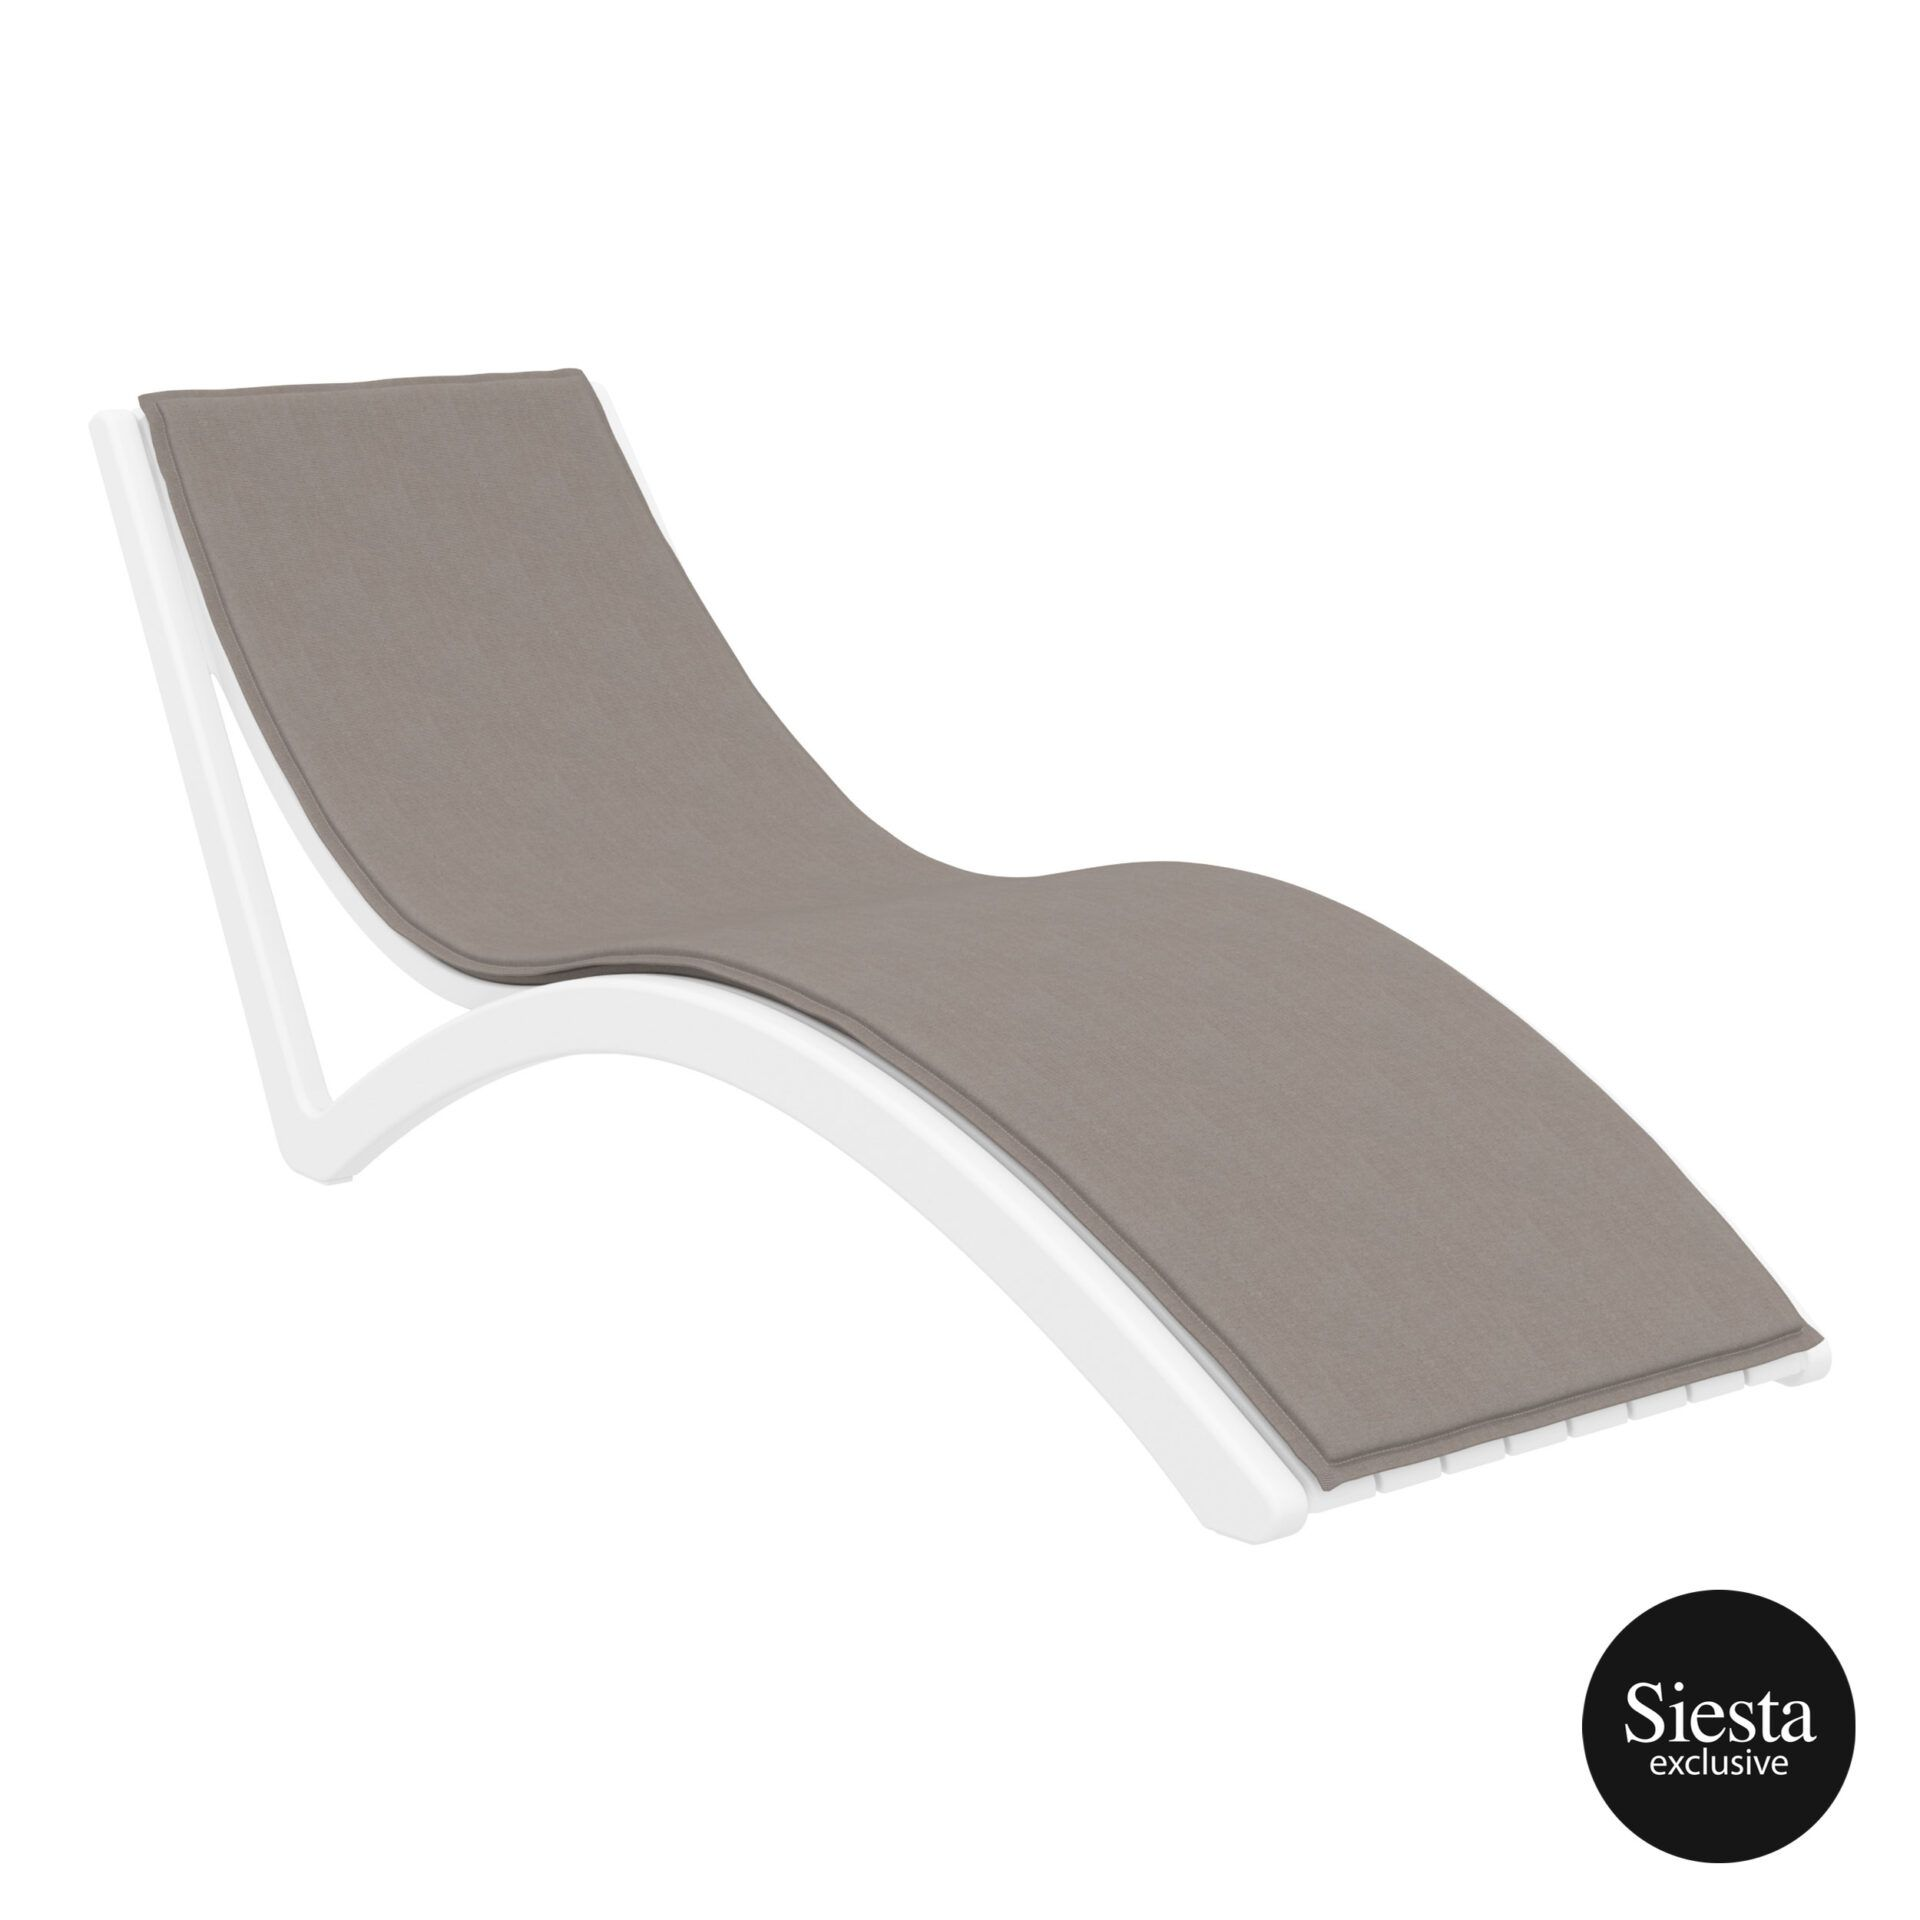 outdoor polypropylene slim sunlounger cushion white brown front side